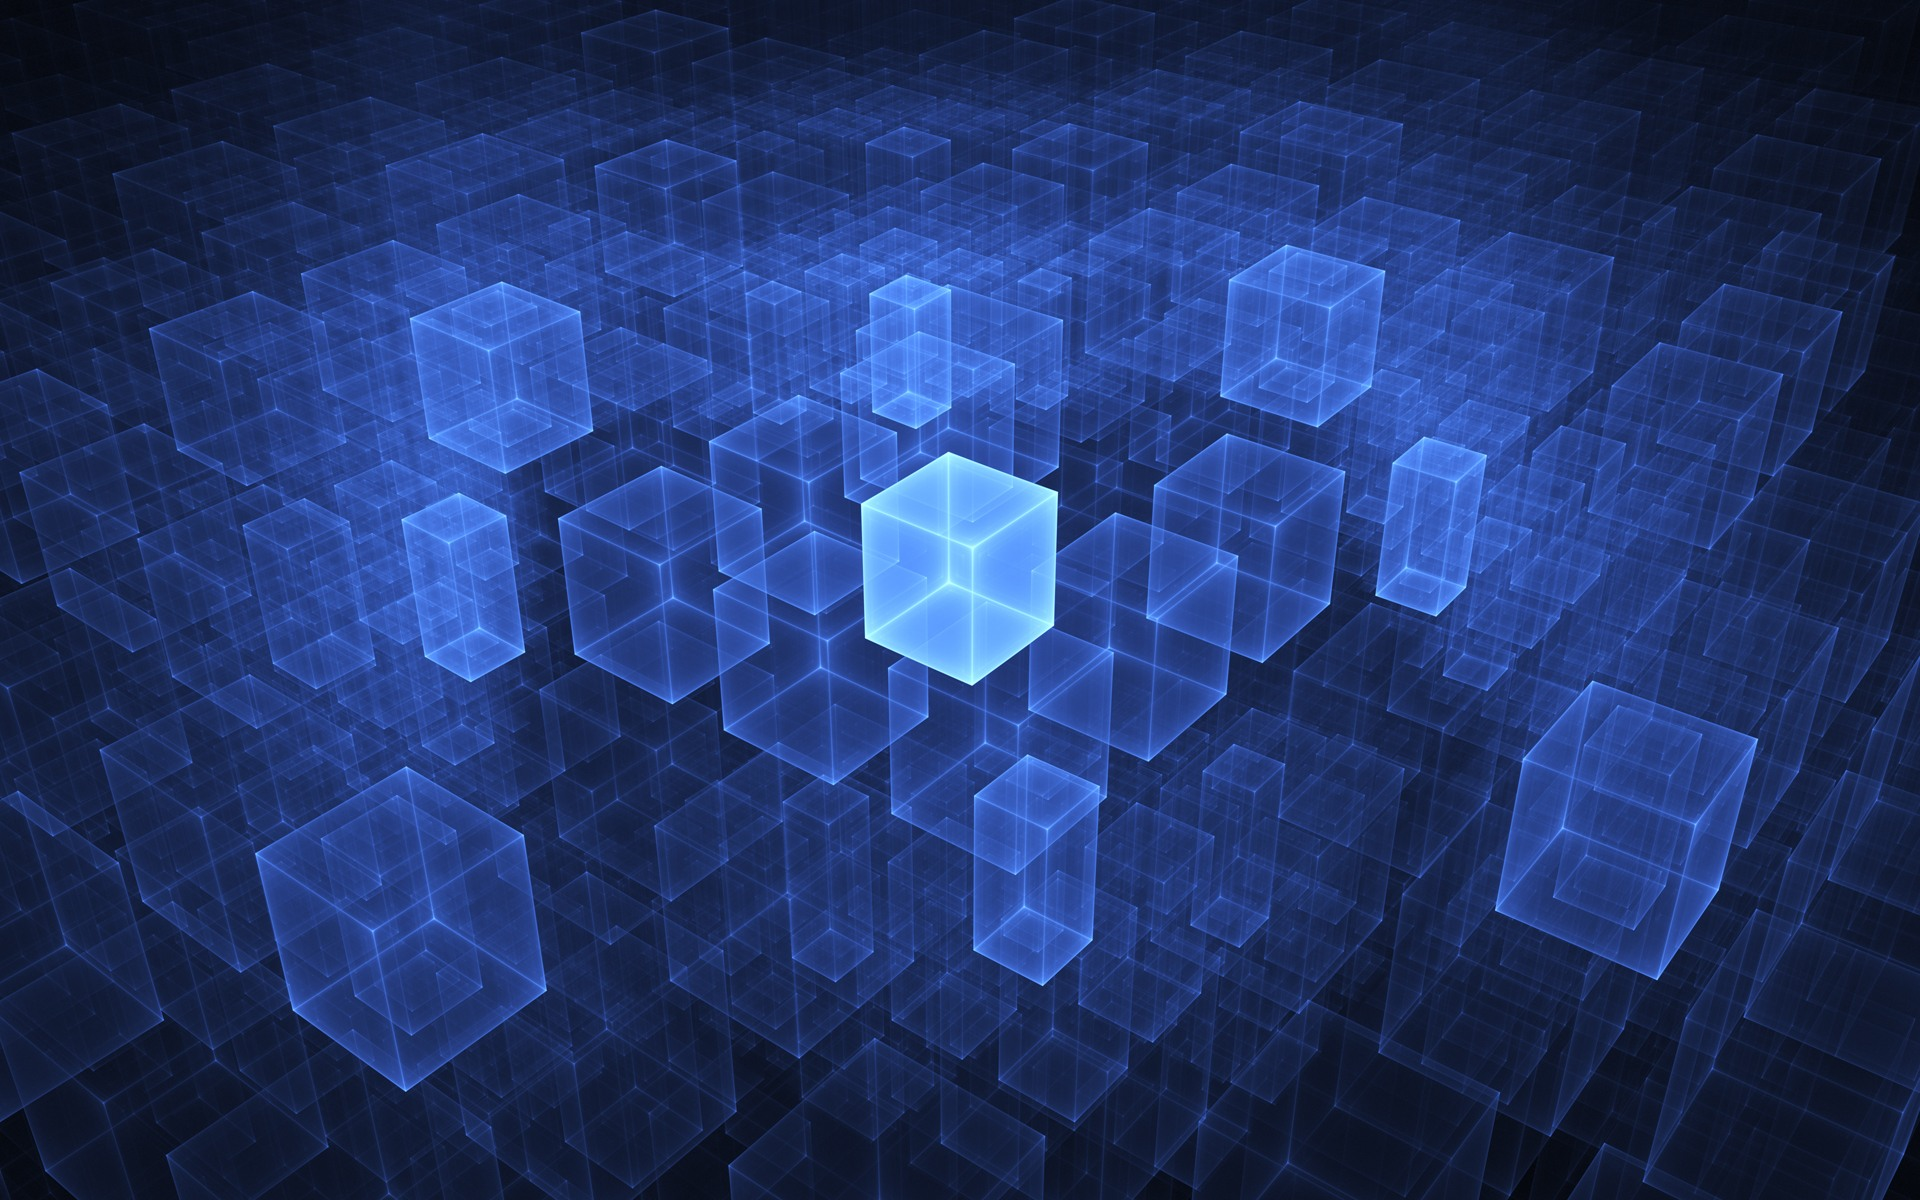 Cube Interface desktop wallpaper 1920x1200